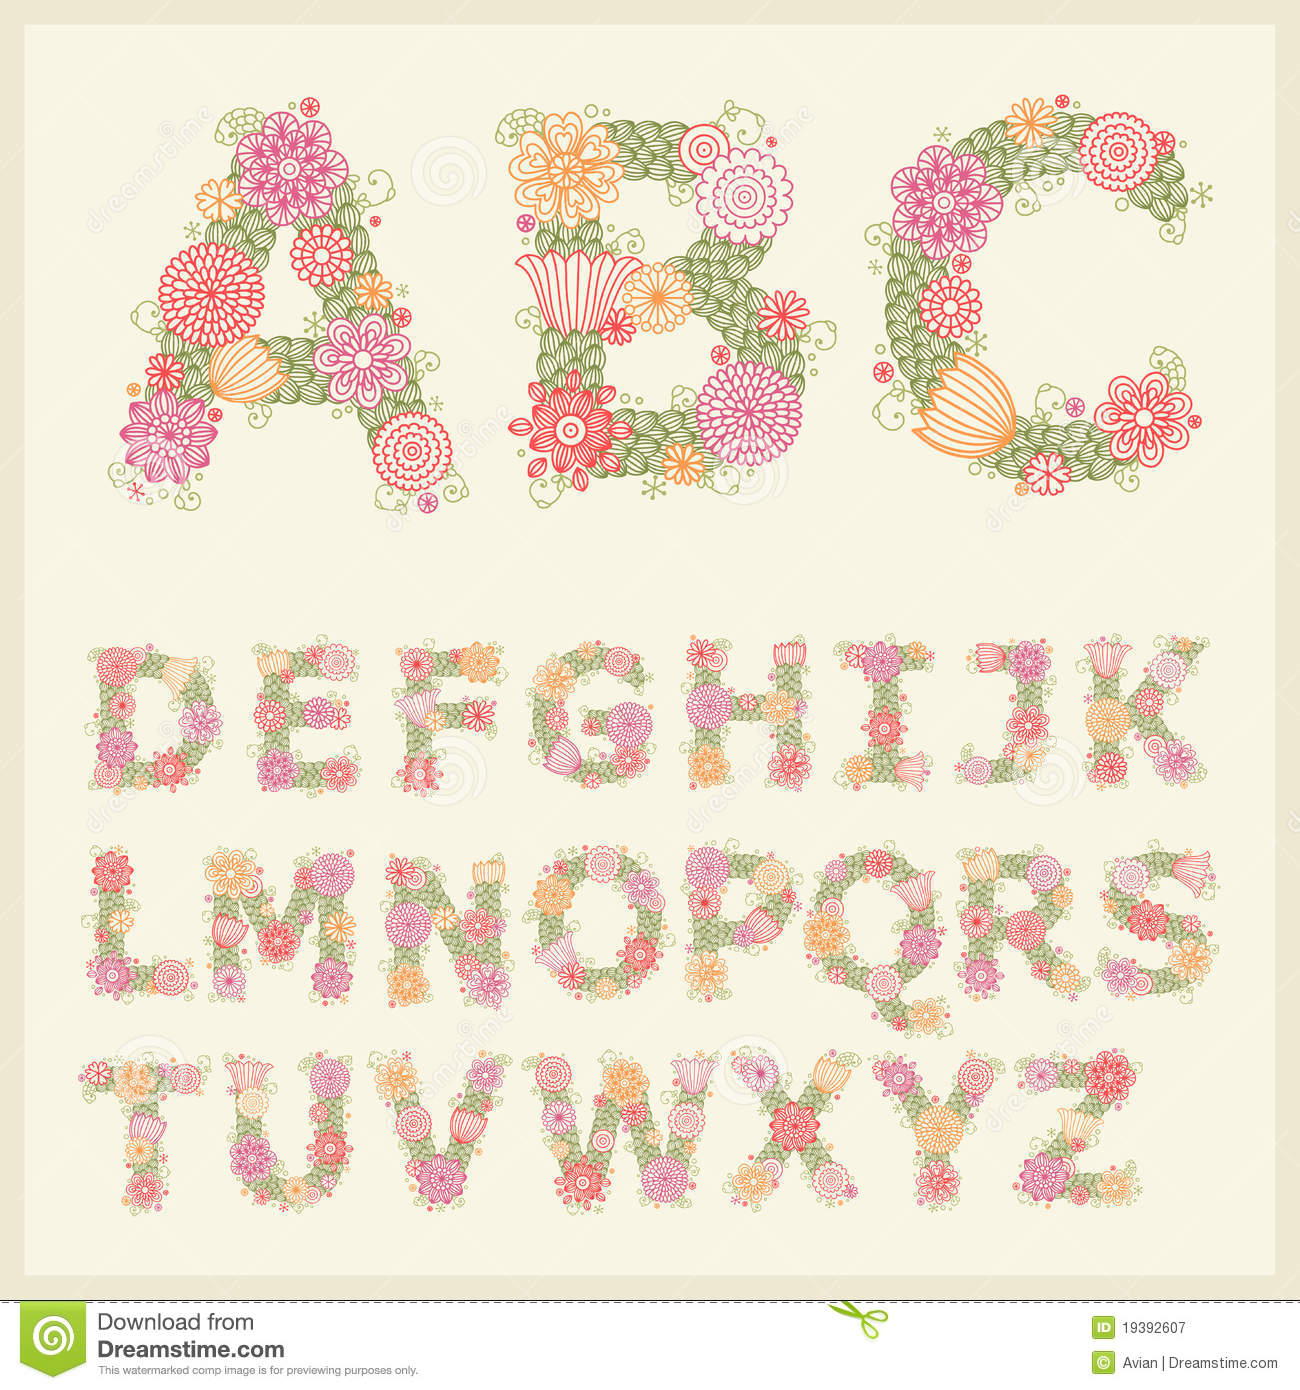 Free Flower Font Photo - Flowers Healthy